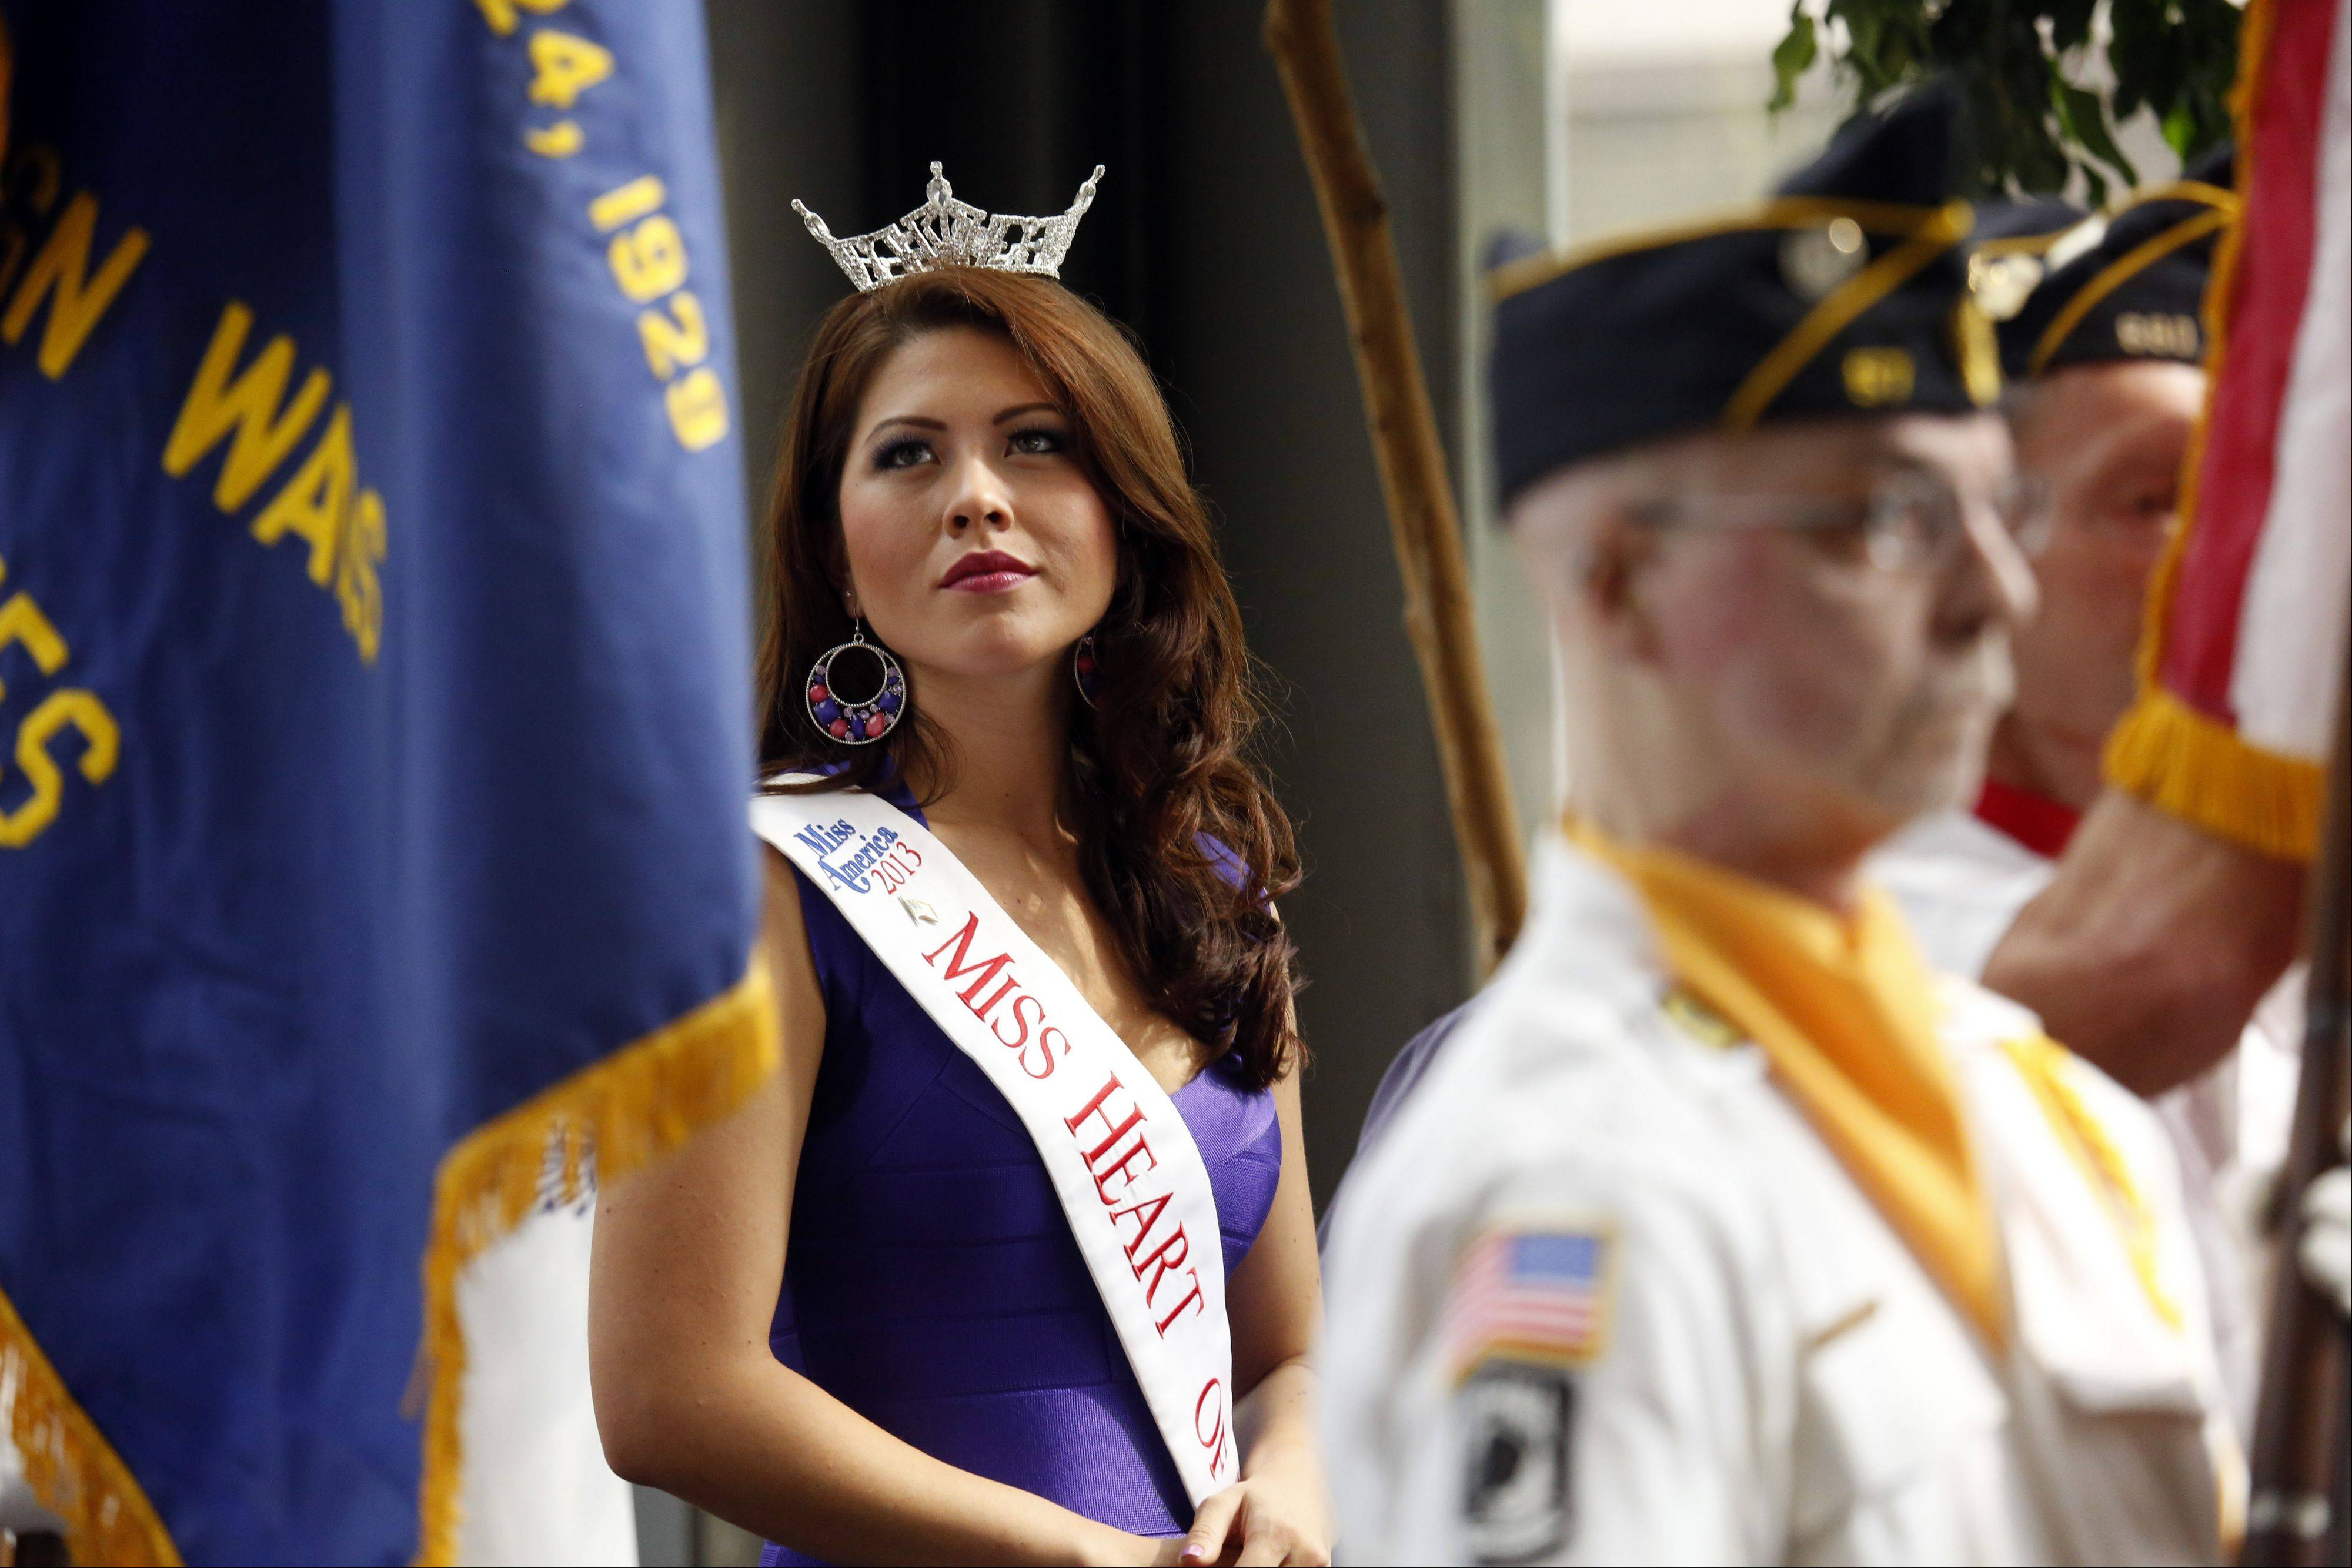 Marisa Buchheit, Miss Heart of Illinois 2013, watches as the color guard retires the colors at the end of the opening ceremony Thursday.